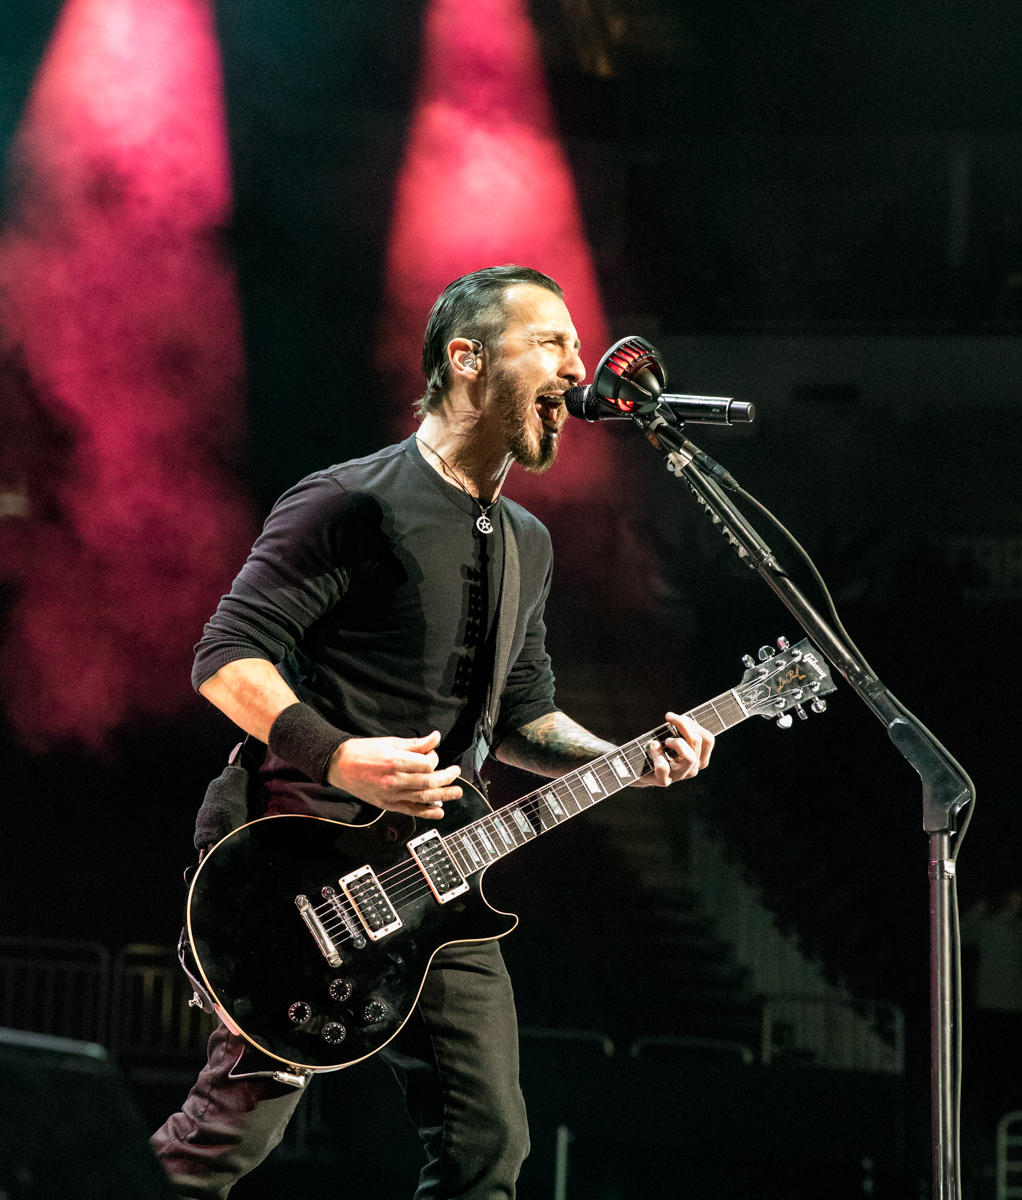 Sully Erna of Godsmack performs at Fiserv Forum in Milwaukee, WI on 04/20/2019